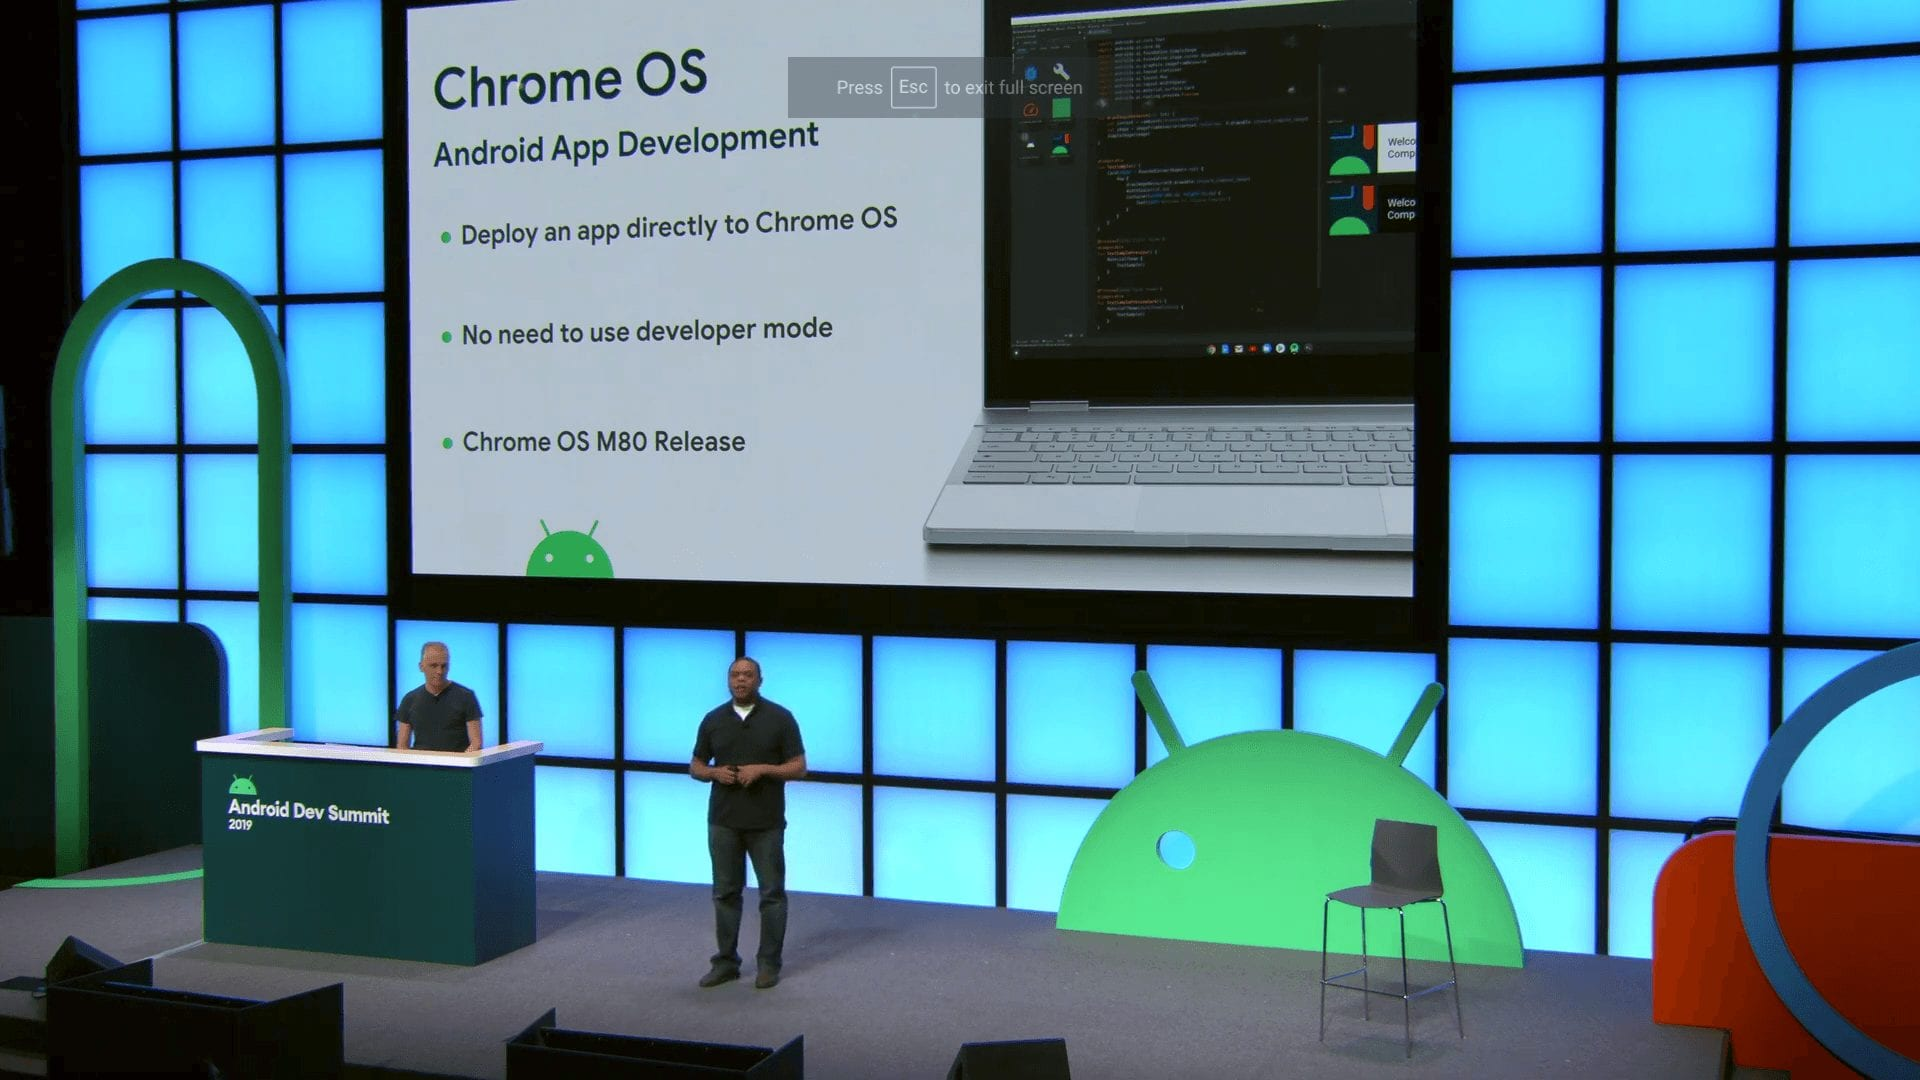 Chrome OS 80: How to sideload Android apps to a Chromebook